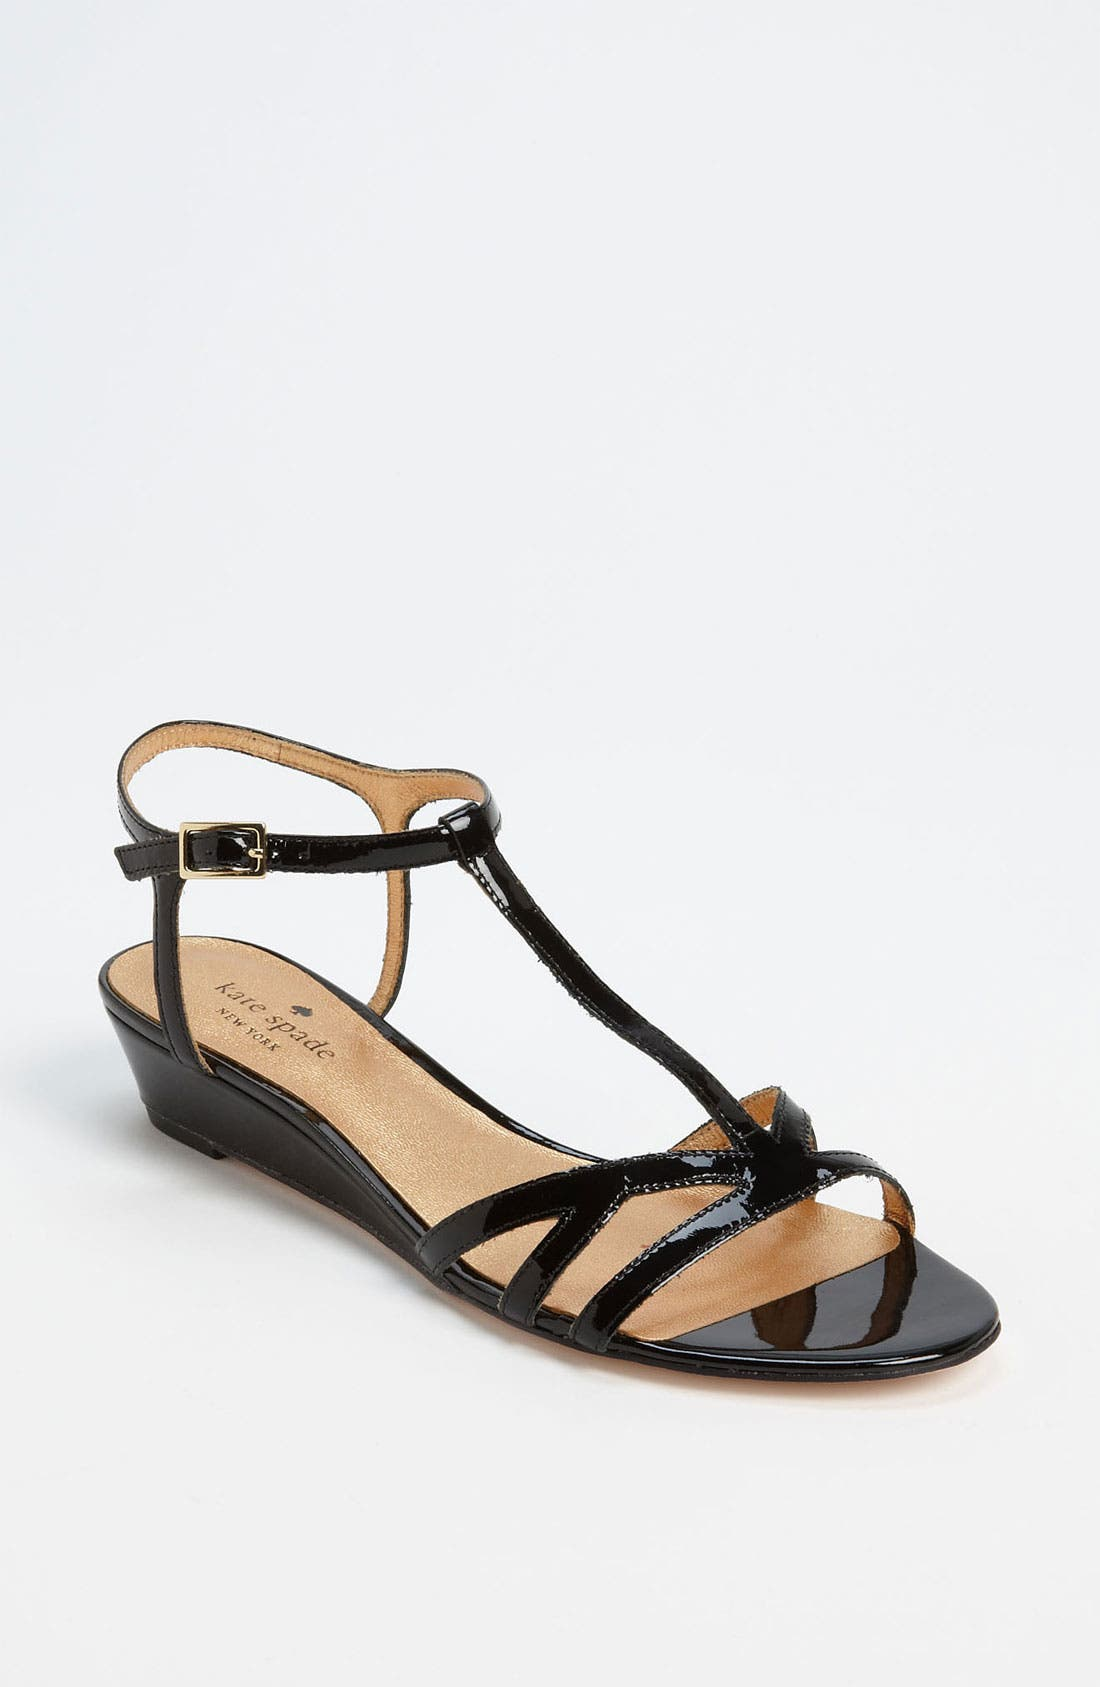 Main Image - kate spade new york 'violet' sandal